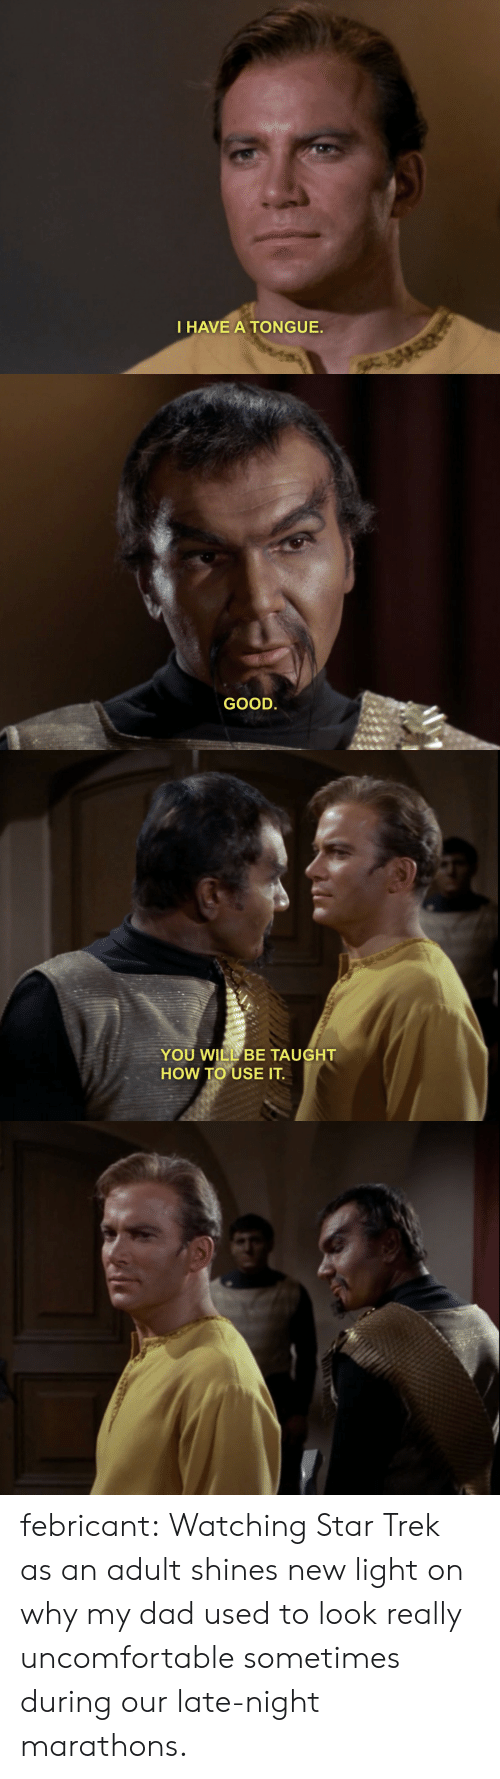 Dad, Star Trek, and Target: I HAVE A TONGUE.   GOOD.   YOU WILL BE TAUGHT  HOW TO USE IT febricant:  Watching Star Trek as an adult shines new light on why my dad used to look really uncomfortable sometimes during our late-night marathons.